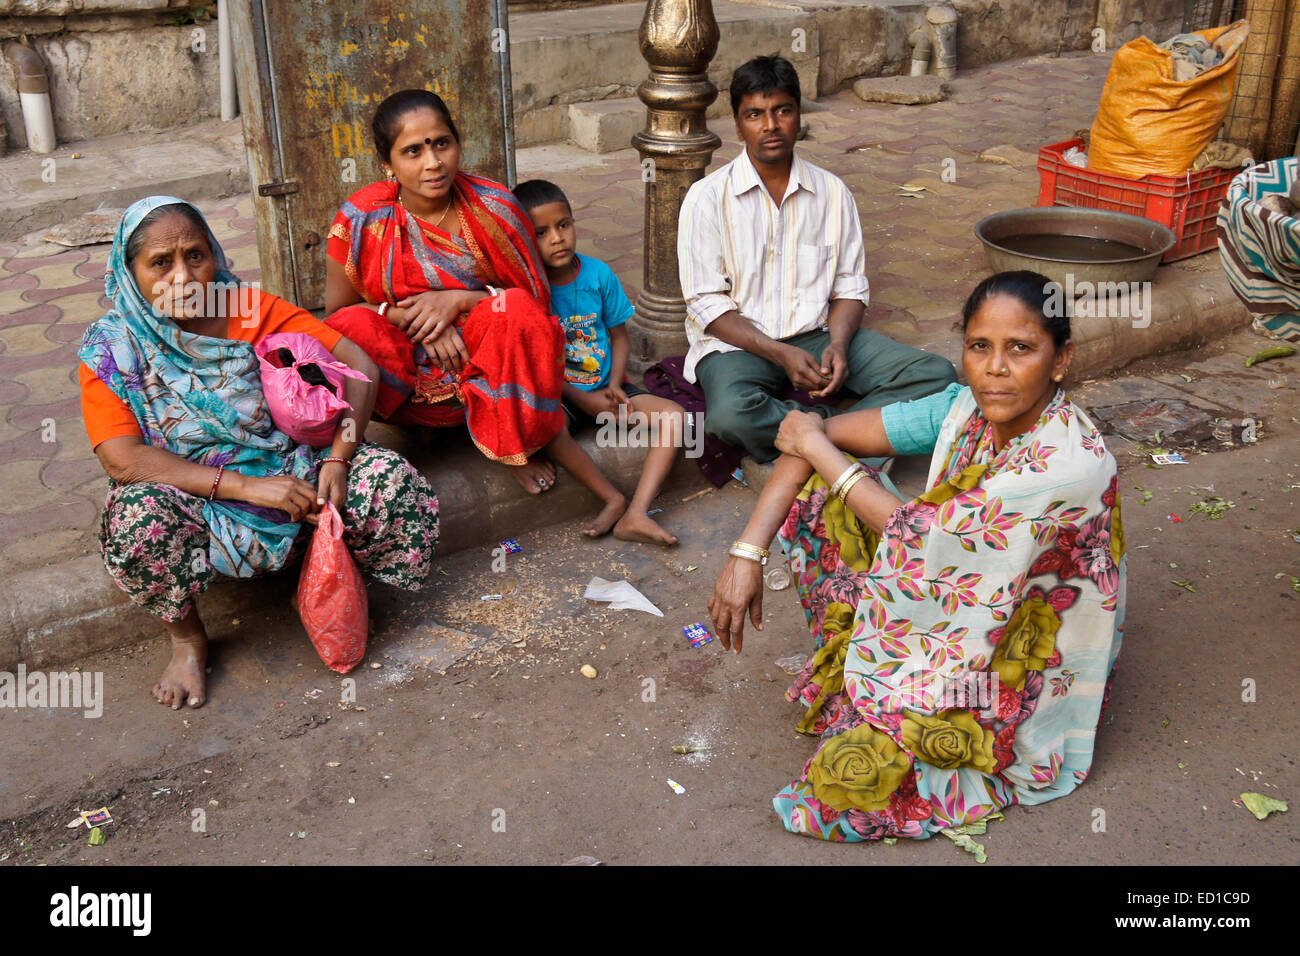 Family sitting on curb in Old Ahmedabad, Gujarat, India - Stock Image